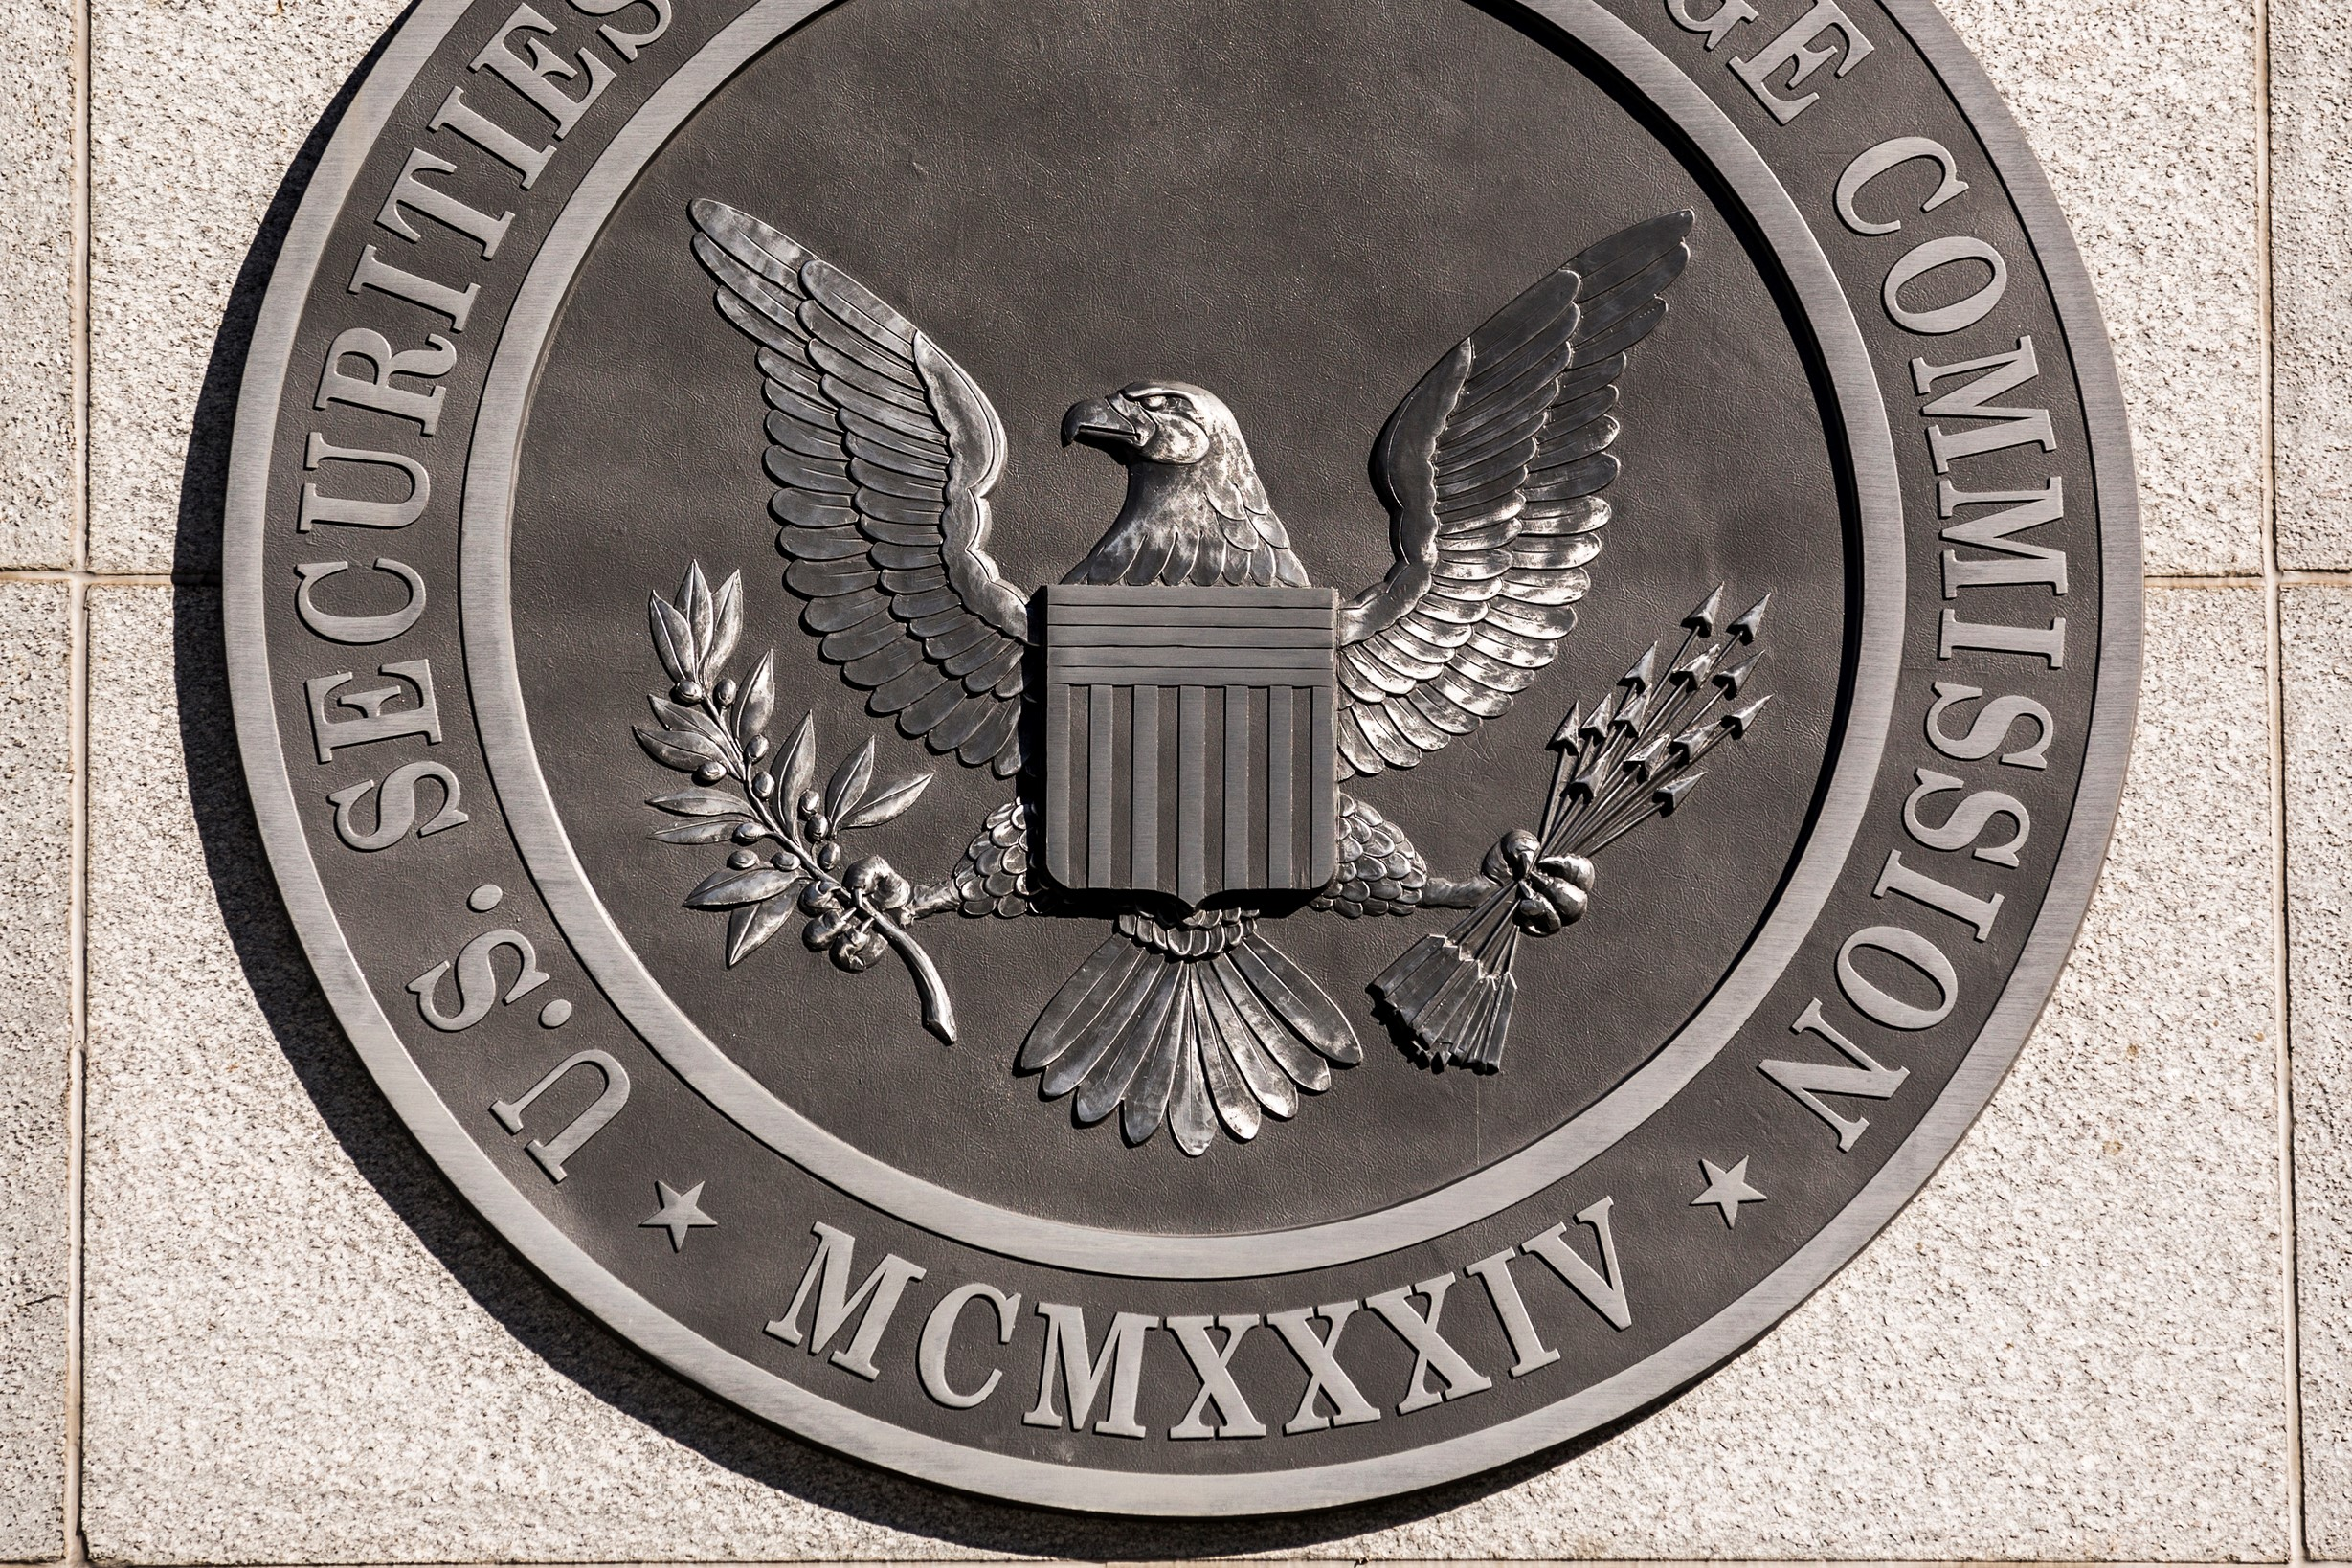 Morning News: US ICOs Fall into Line, USD 18m Scam and 5,704 Victims